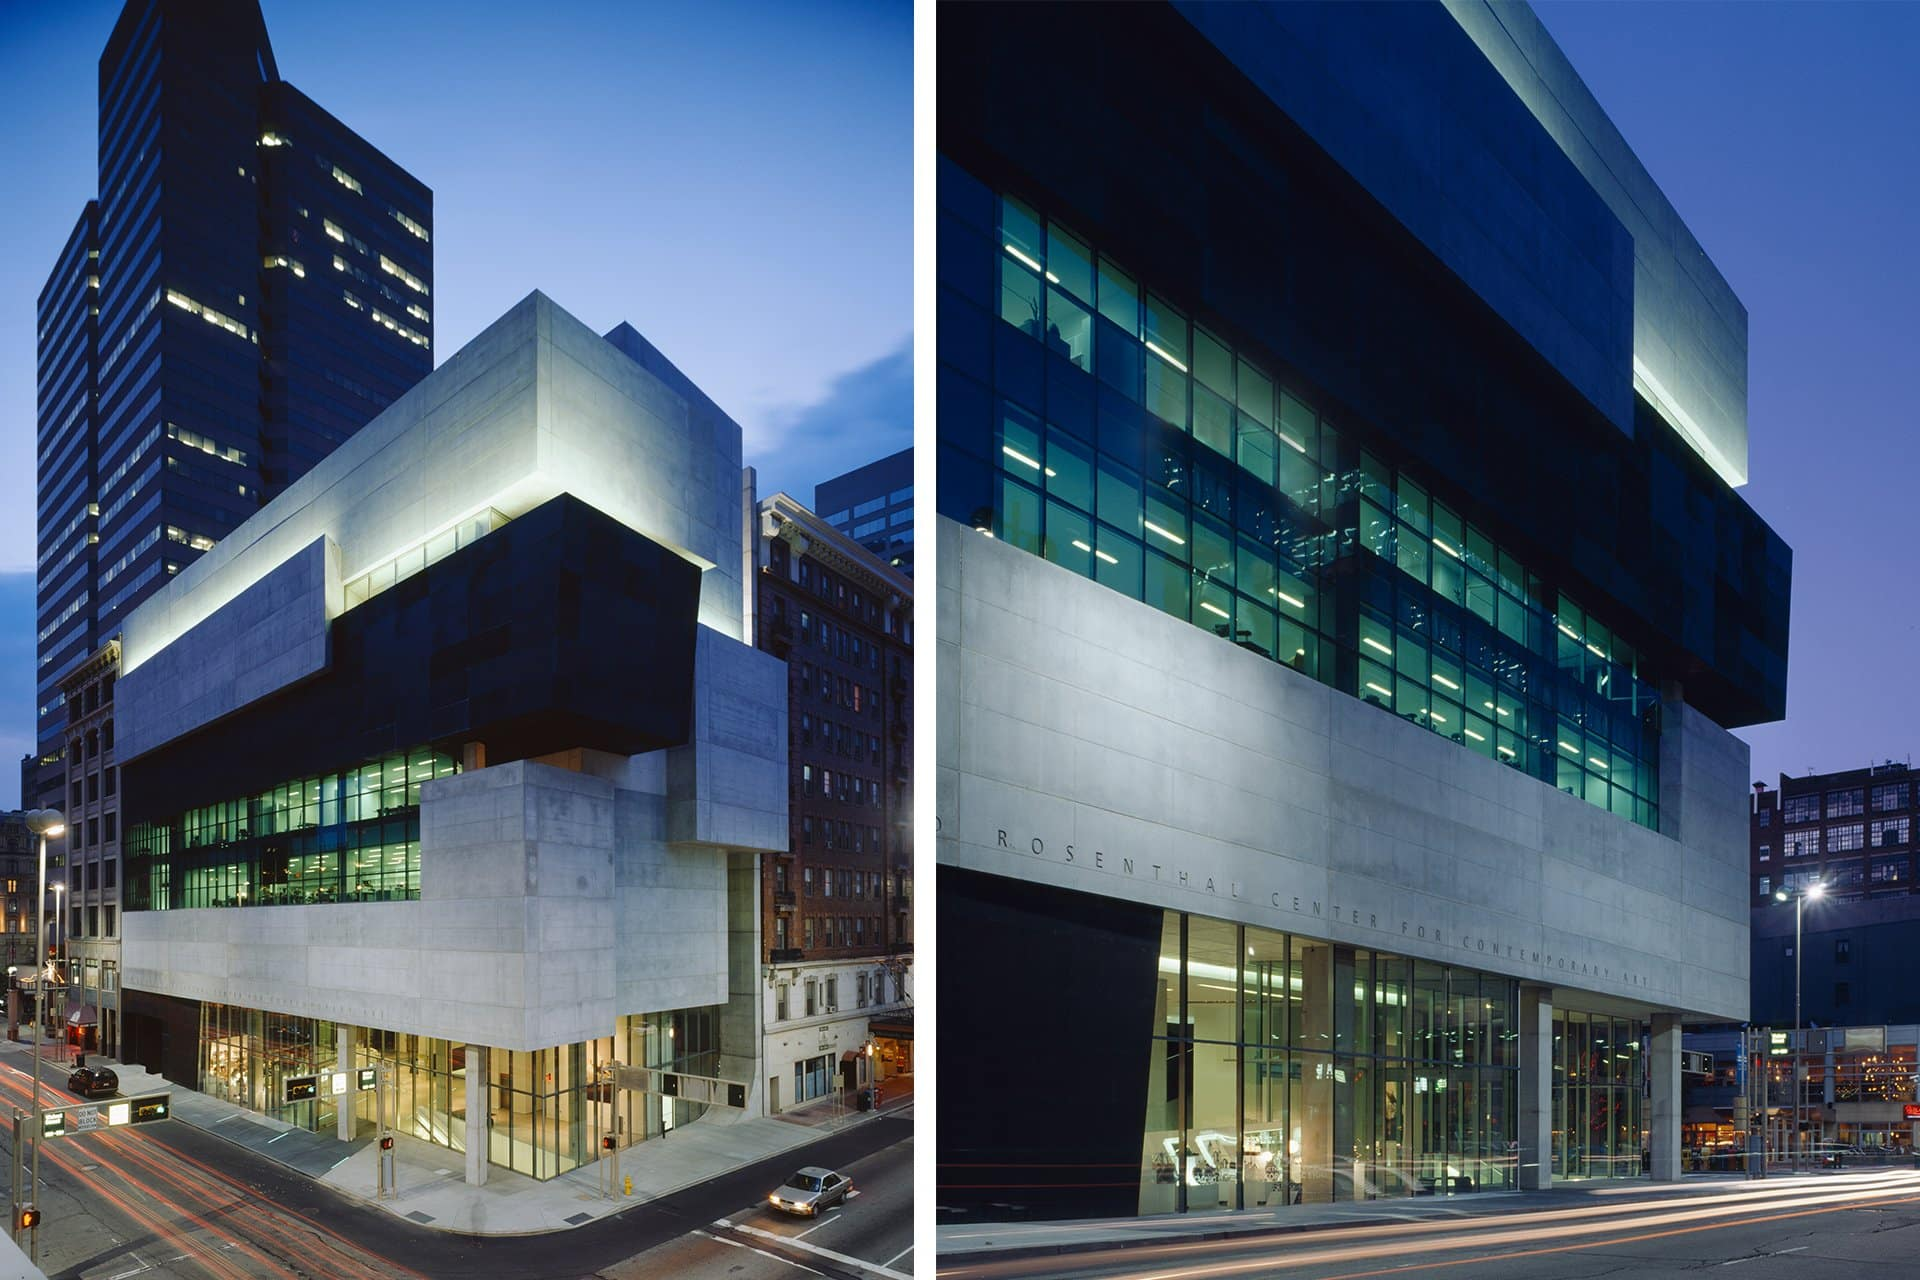 Lois and Richard Rosenthal Center for Contemporary Art exterior building architectural lighting design OVI